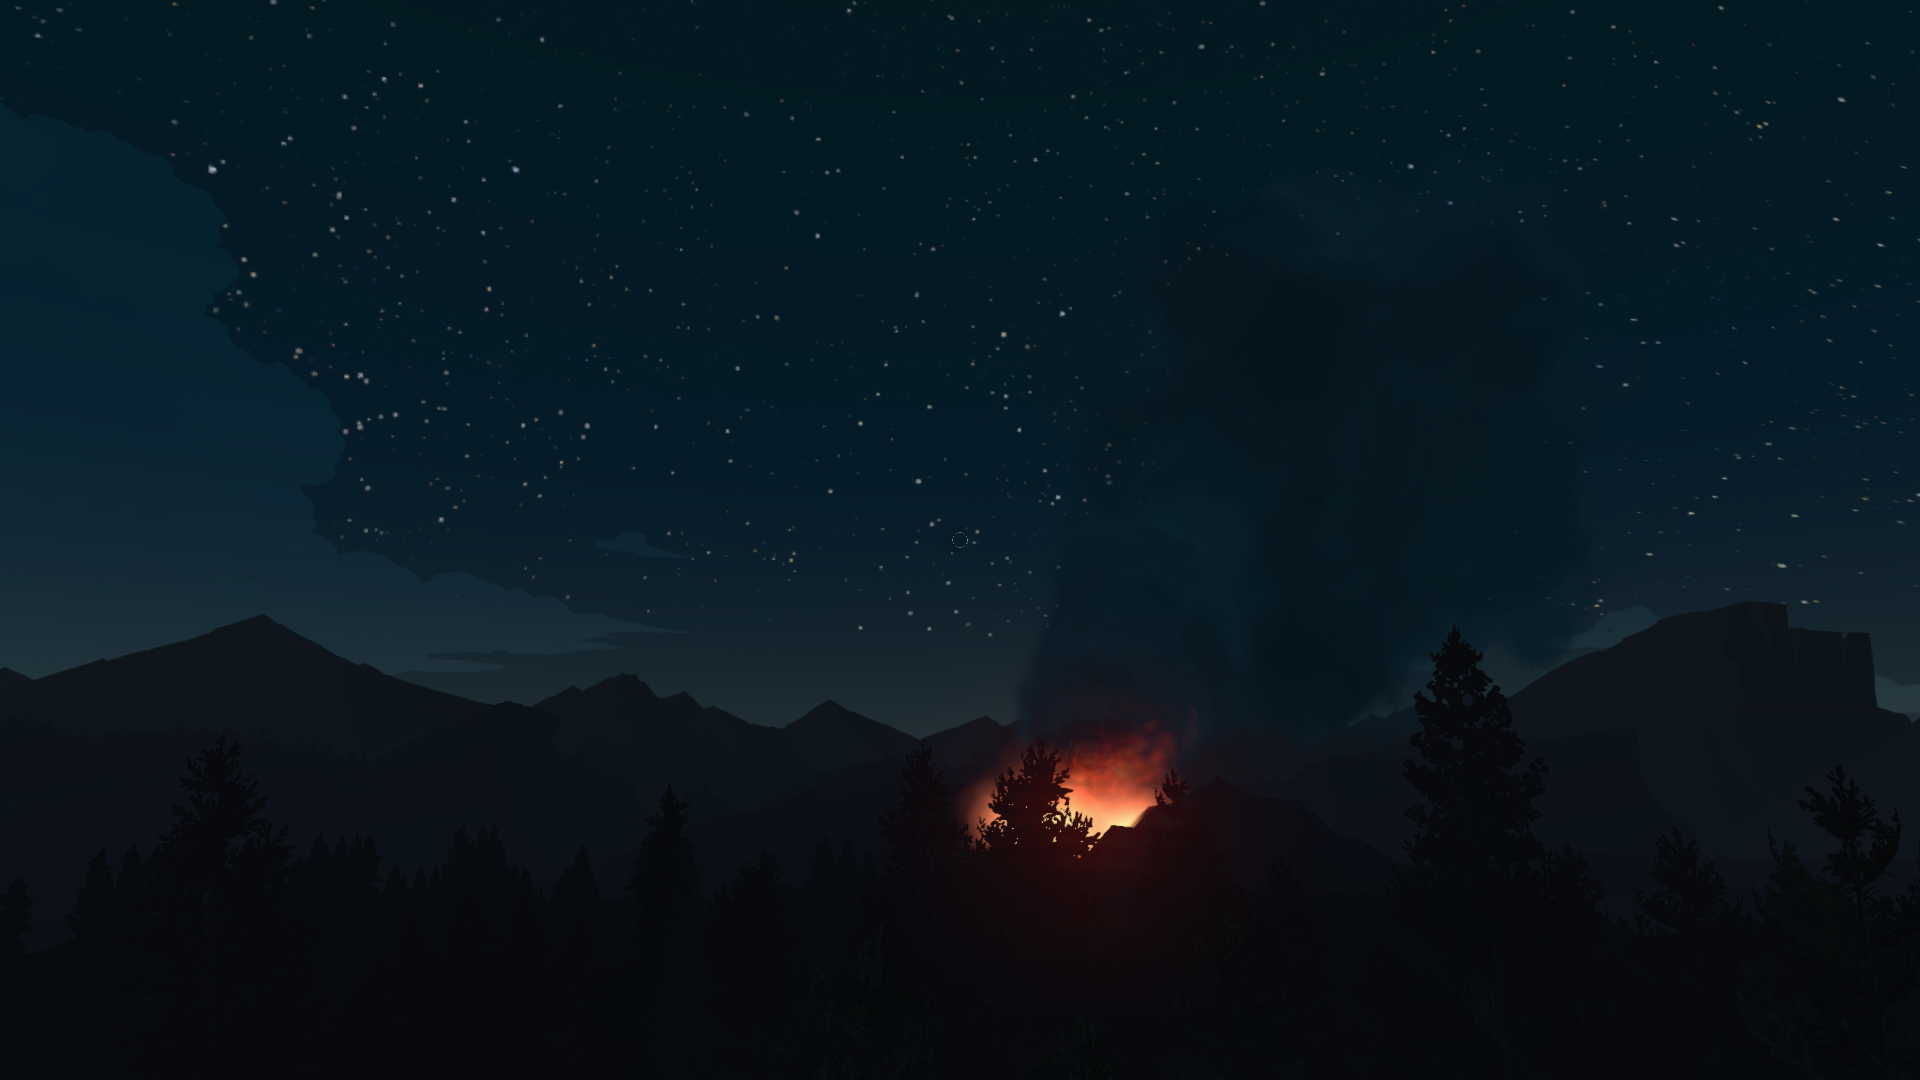 firewatch game wallpaper 59151